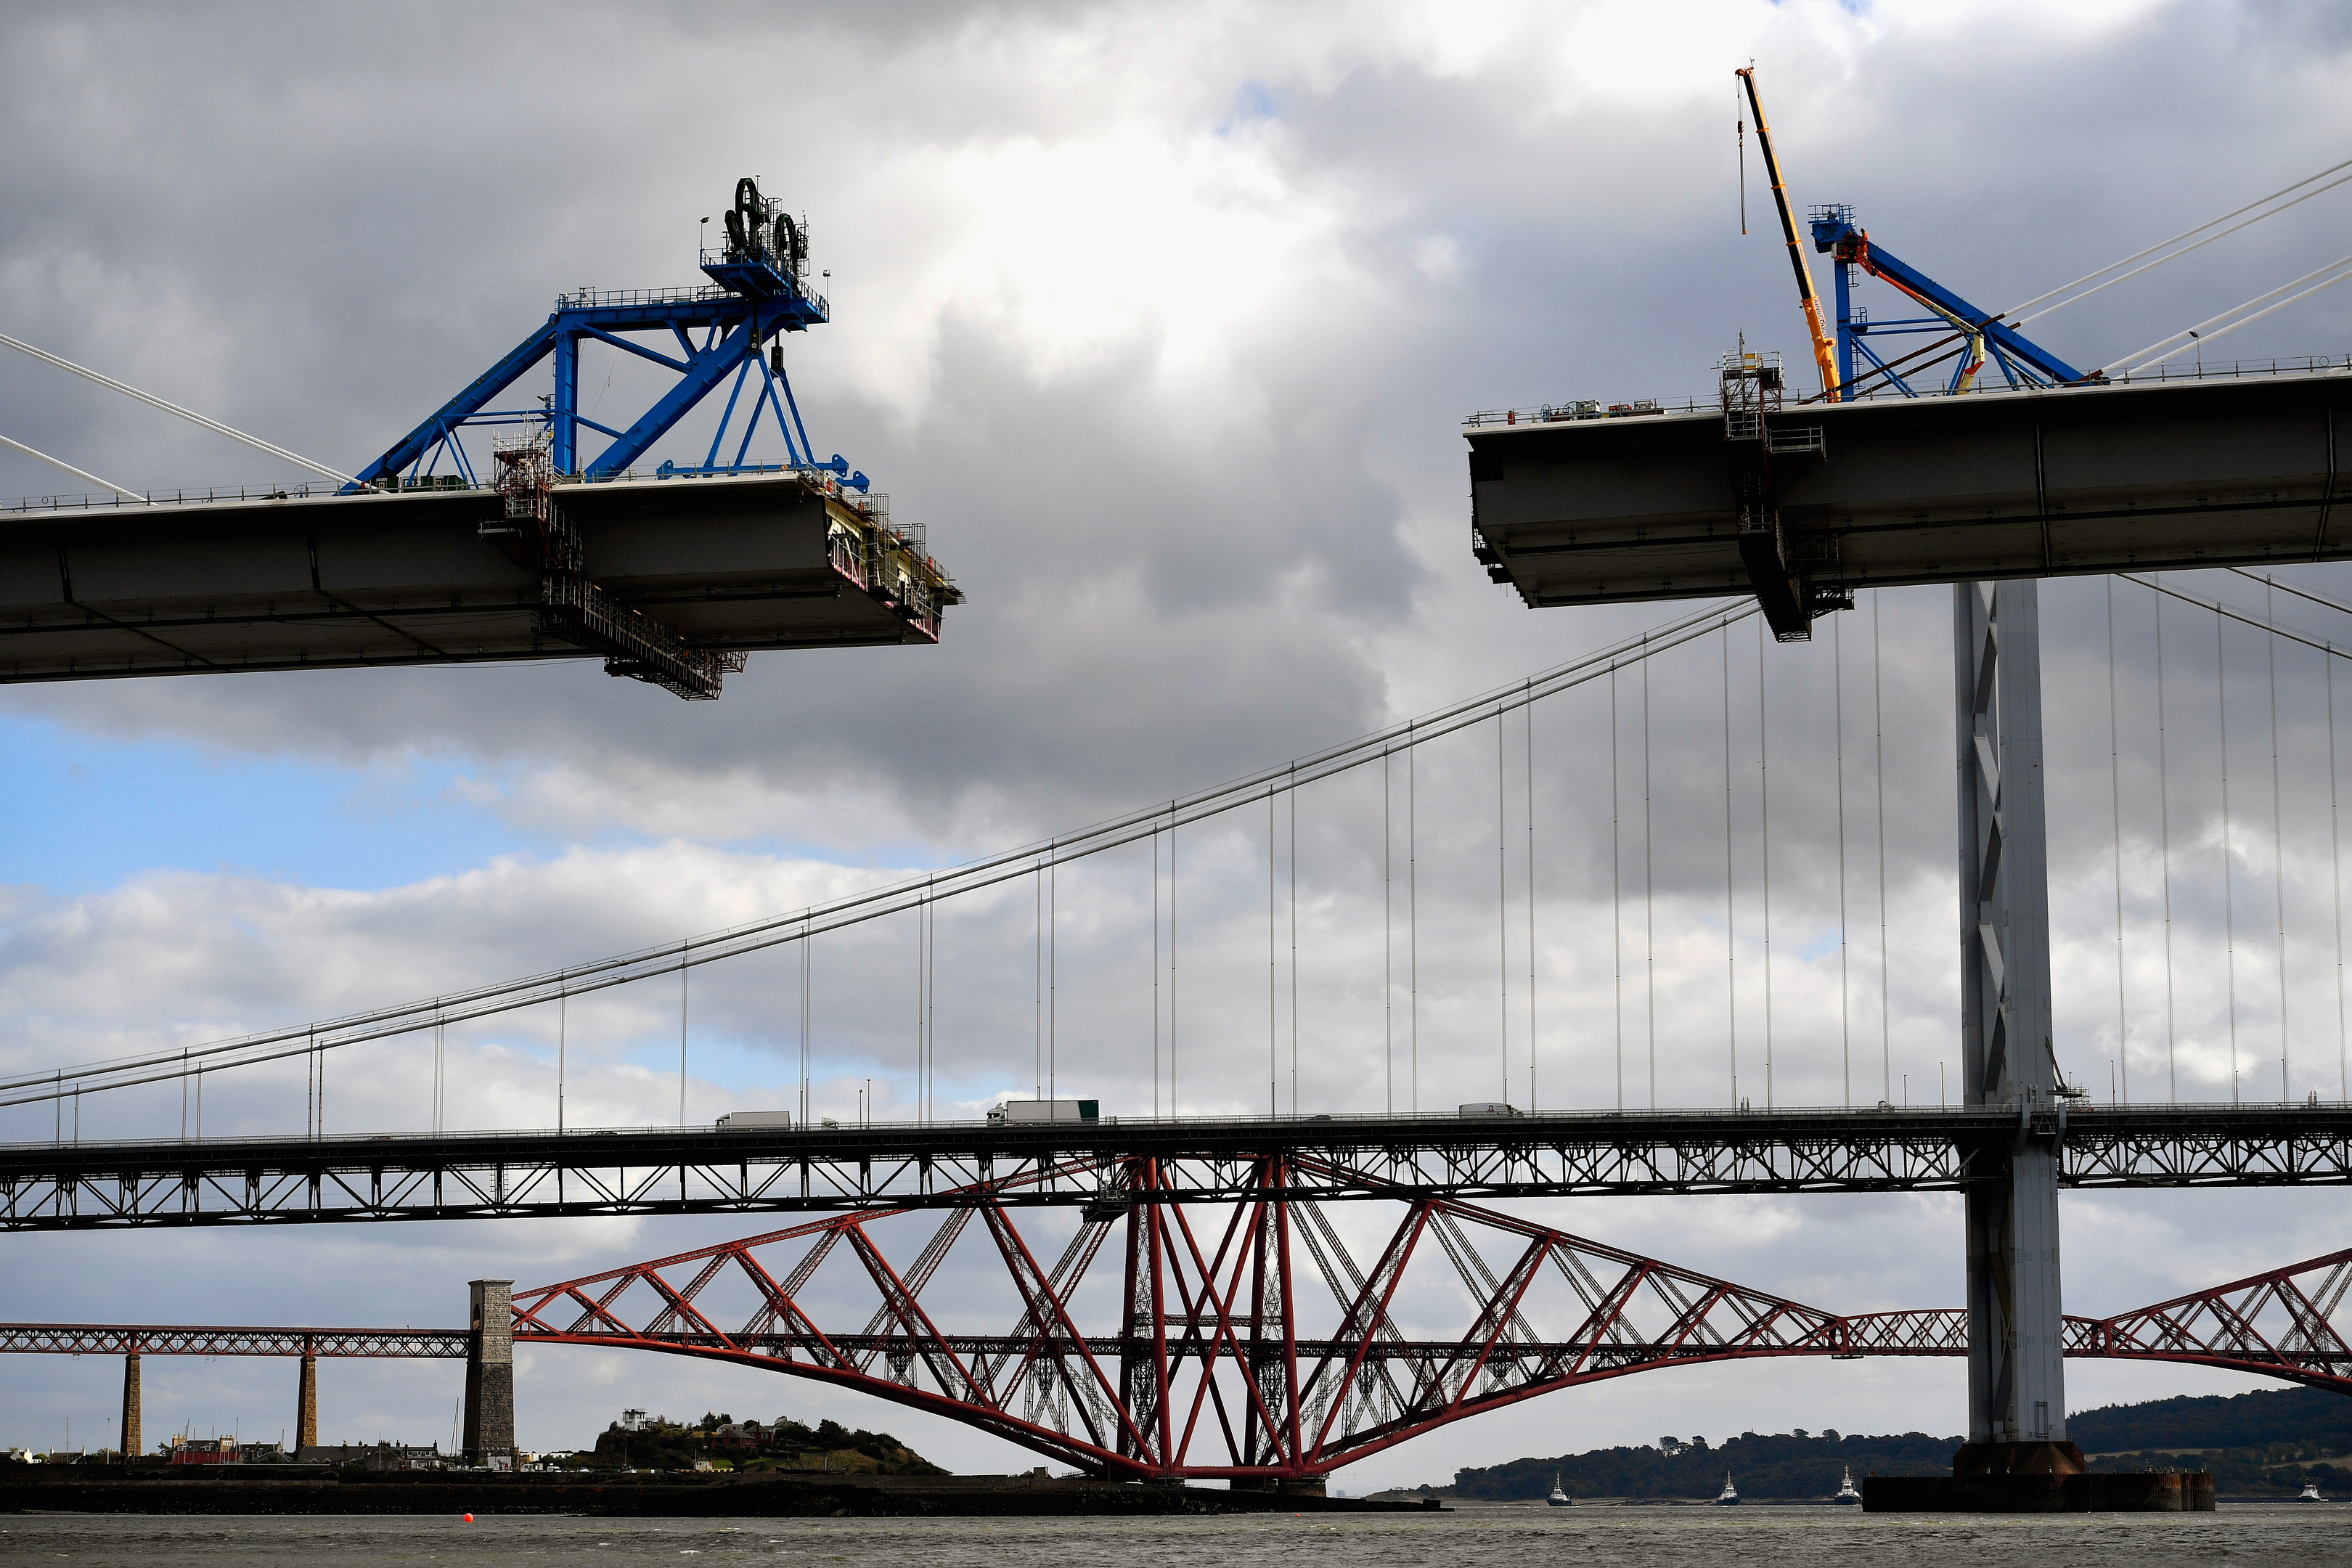 A view underneath the new Forth Crossing